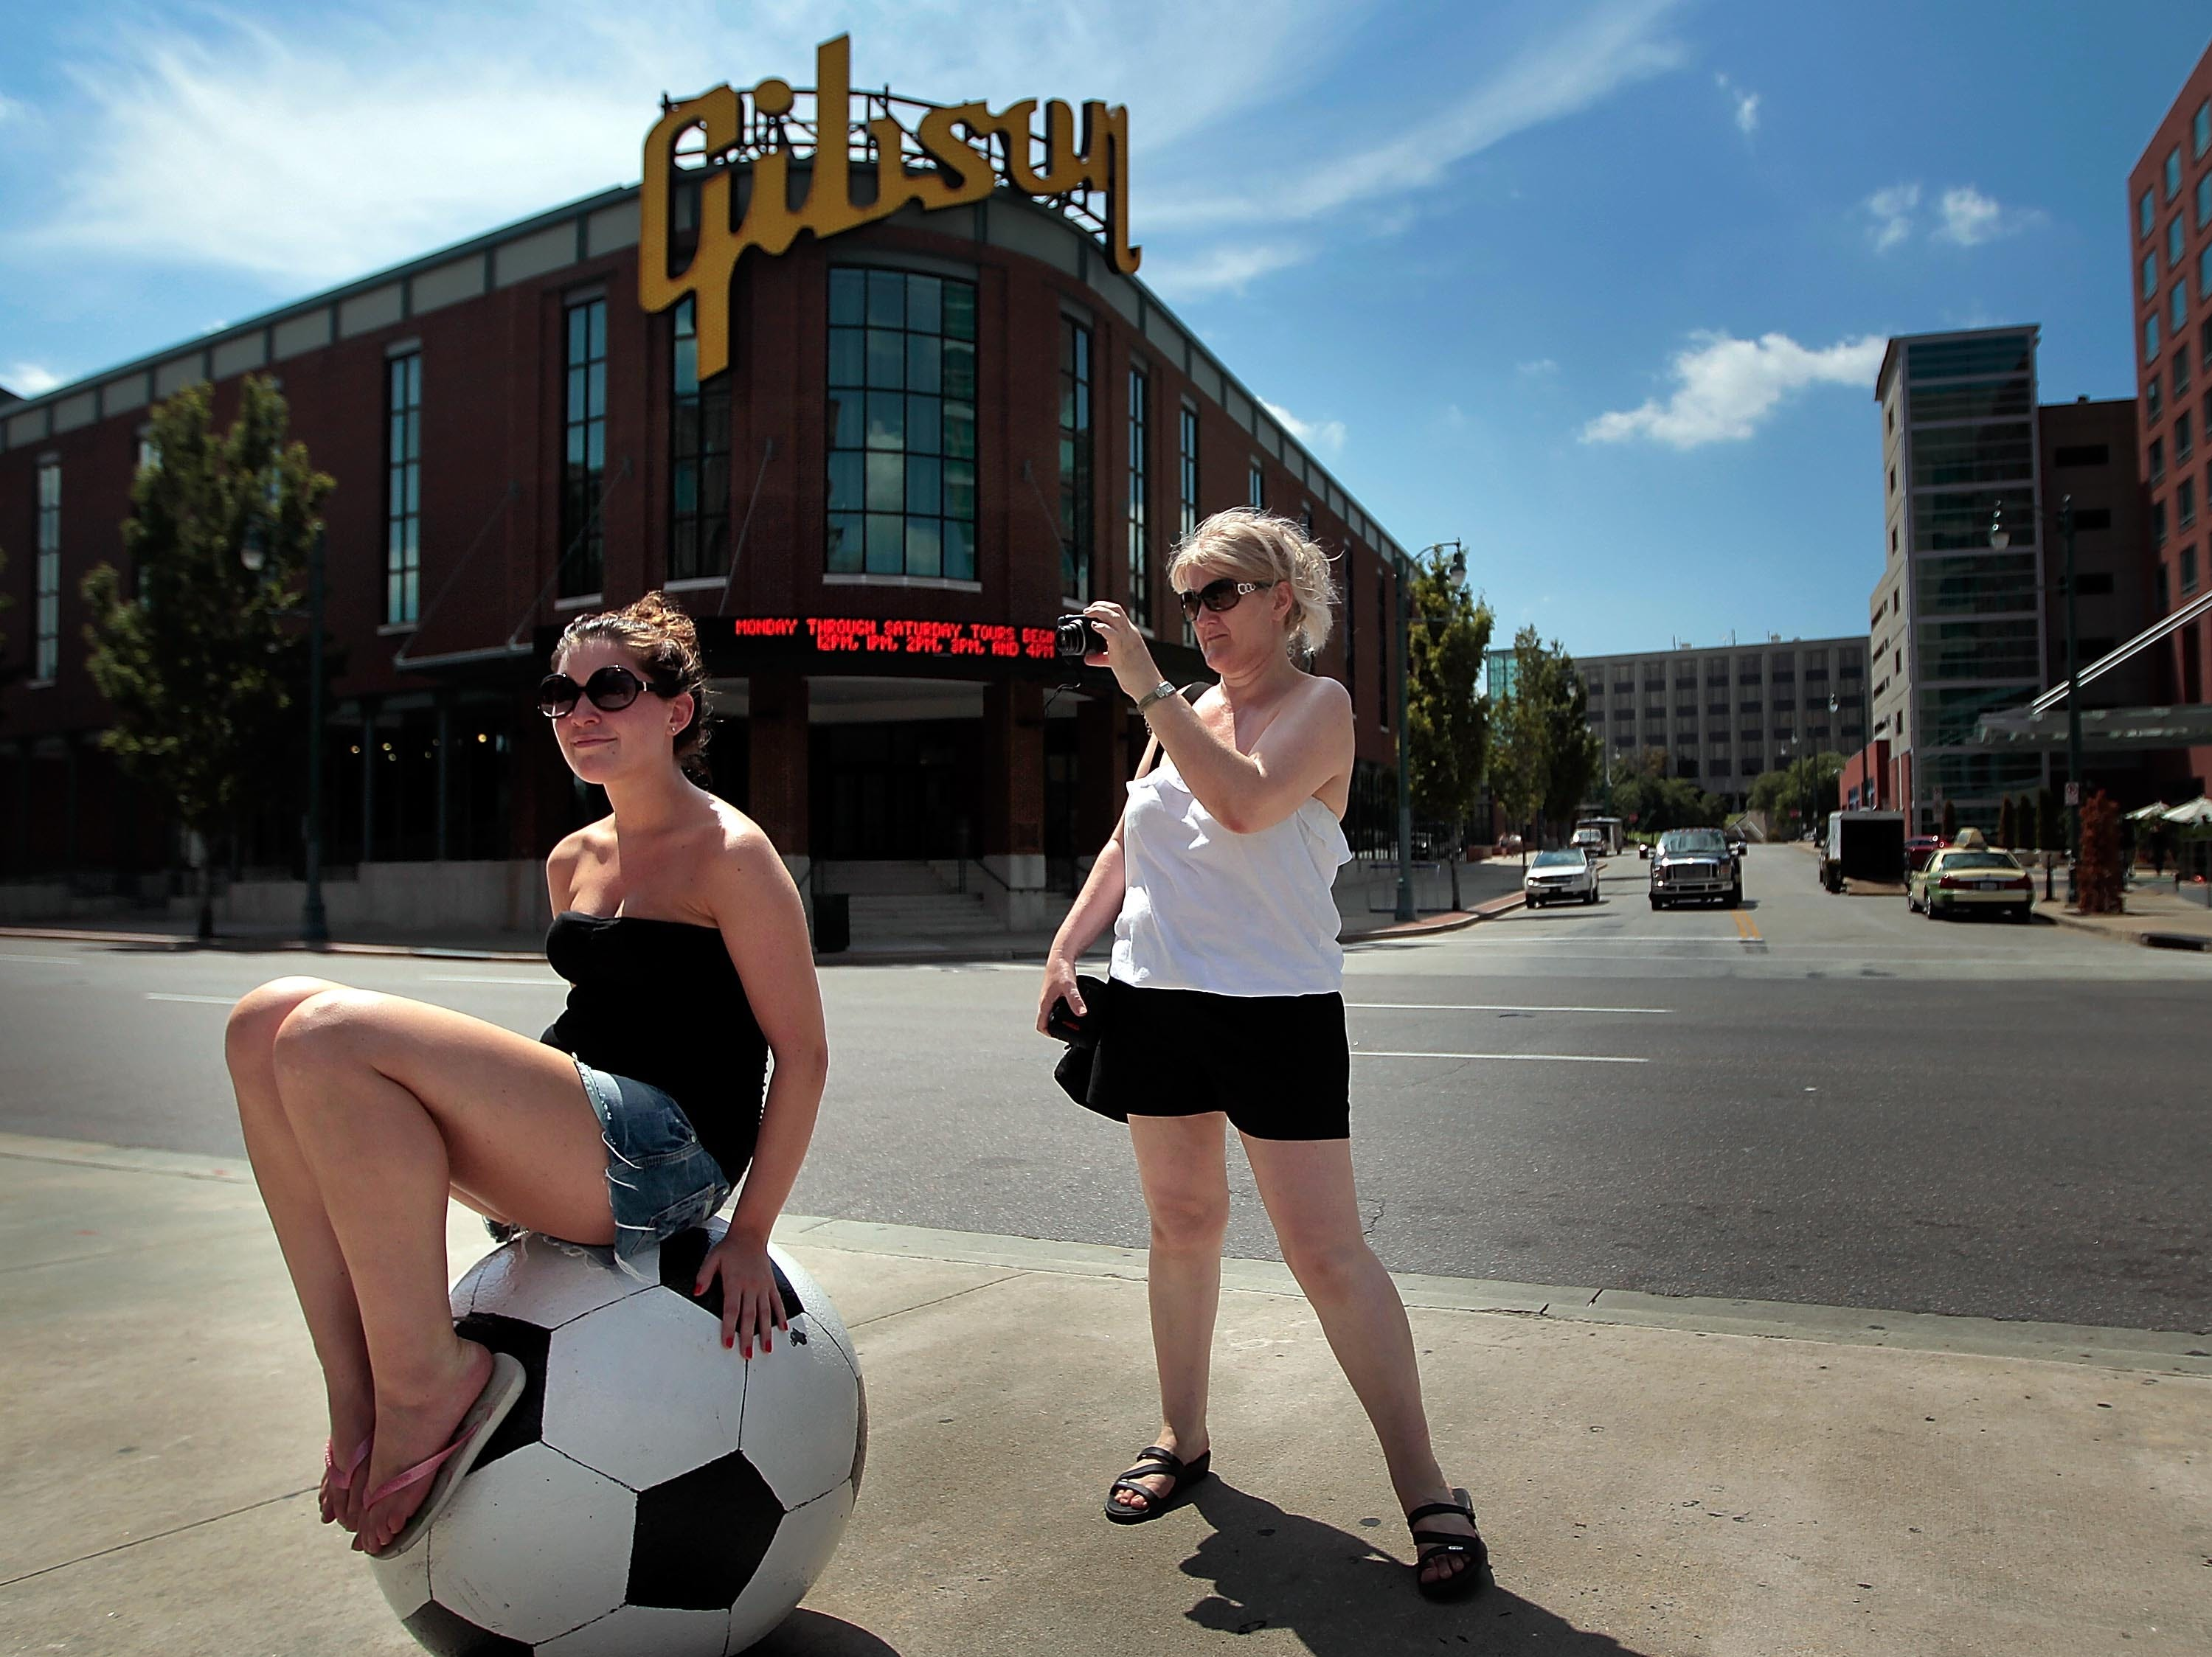 Aug. 6, 2012 - Tourist Sharon Mottershead of Britan takes pictures of her daughter Natalie Mottershead in front of the FedEx Forum after visiting the Gibson Guitar factory to pick up guitar strings for her son.